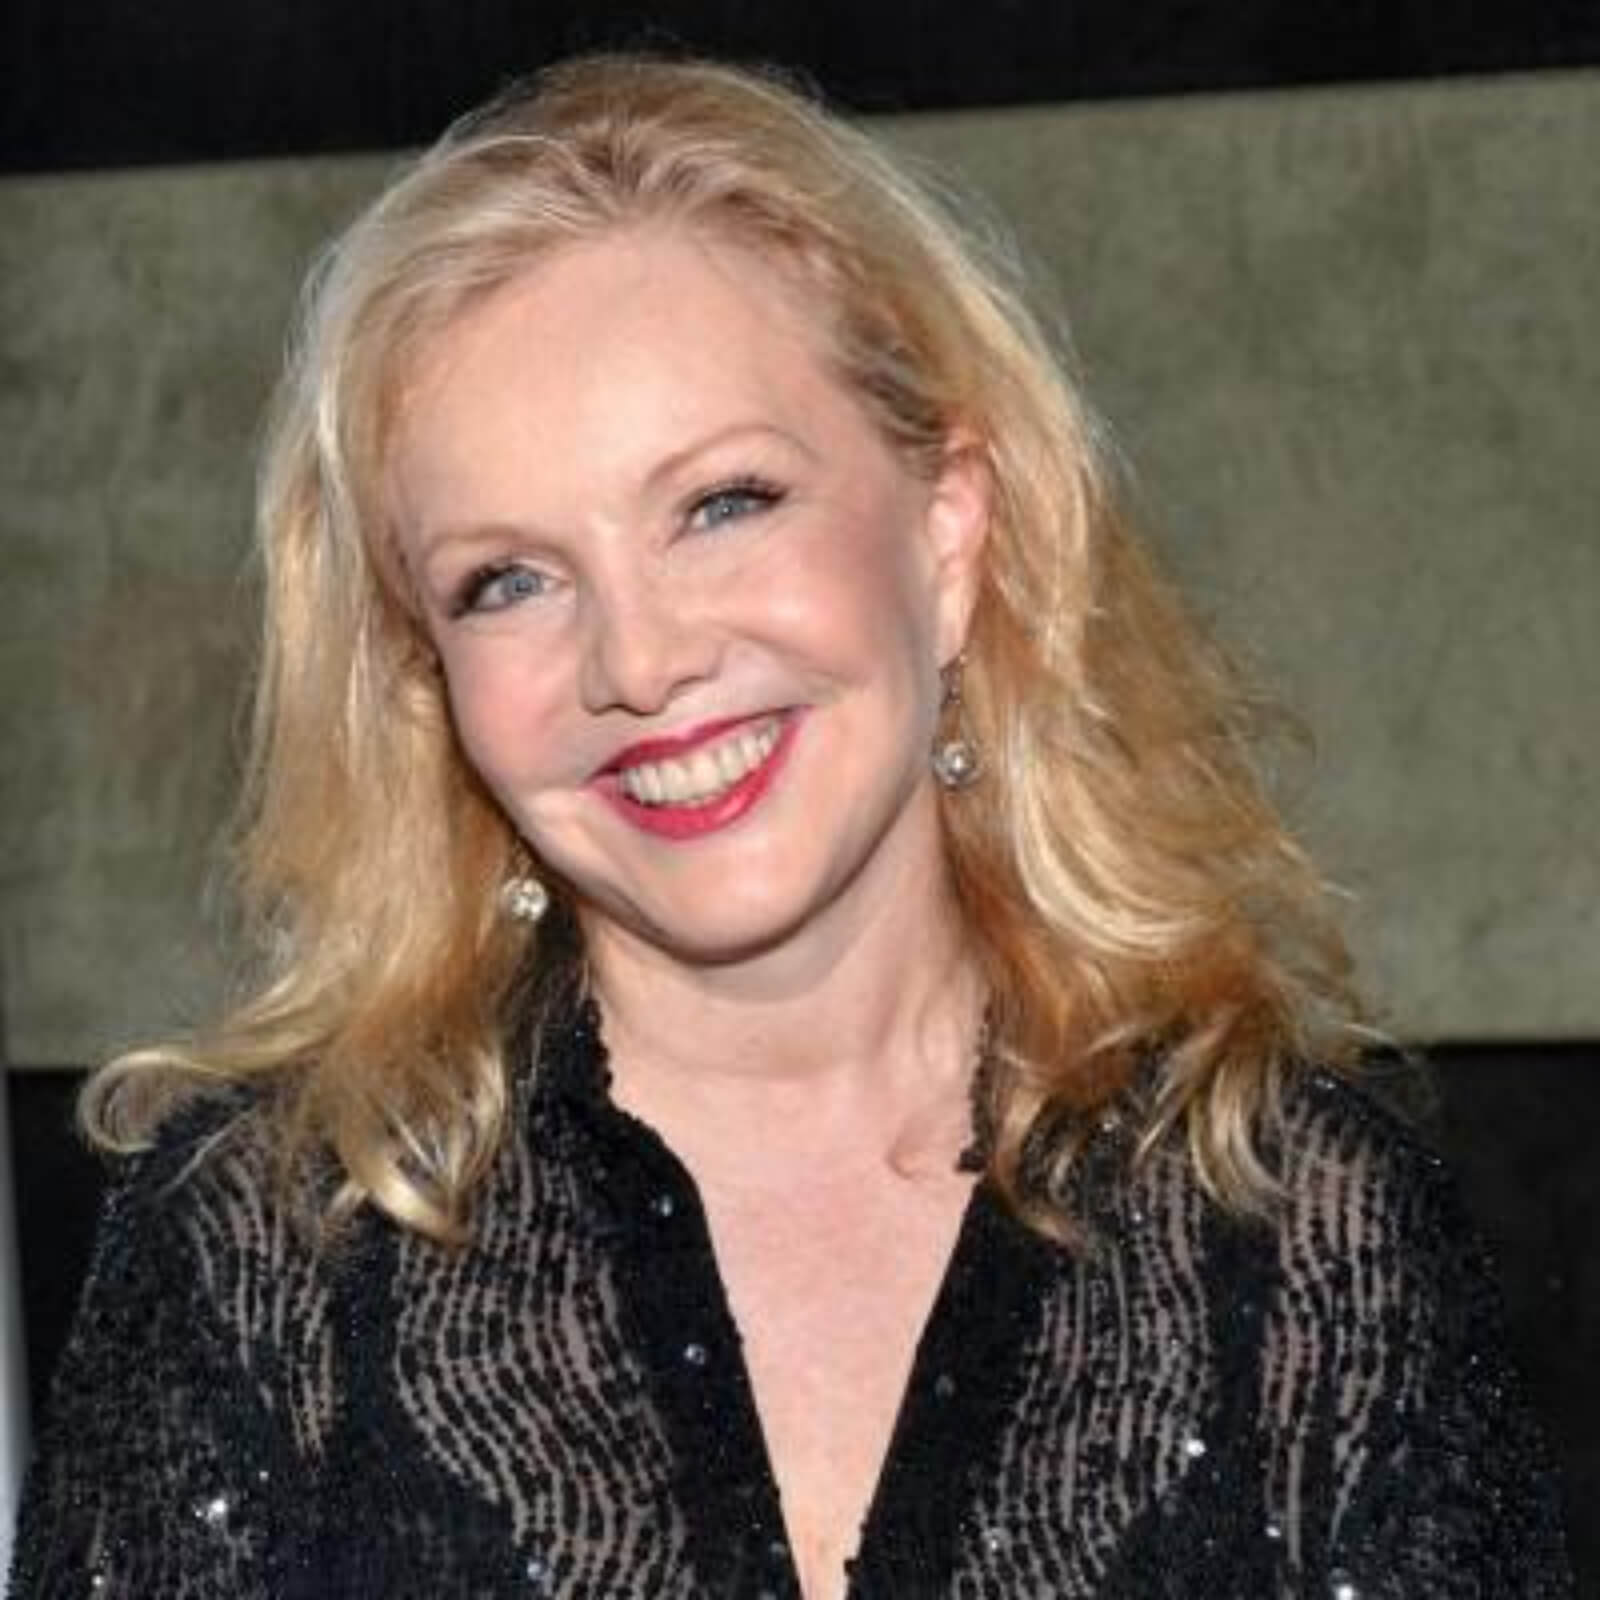 Headshot of Susan Stroman in a sparkly black shirt and beaming smile.